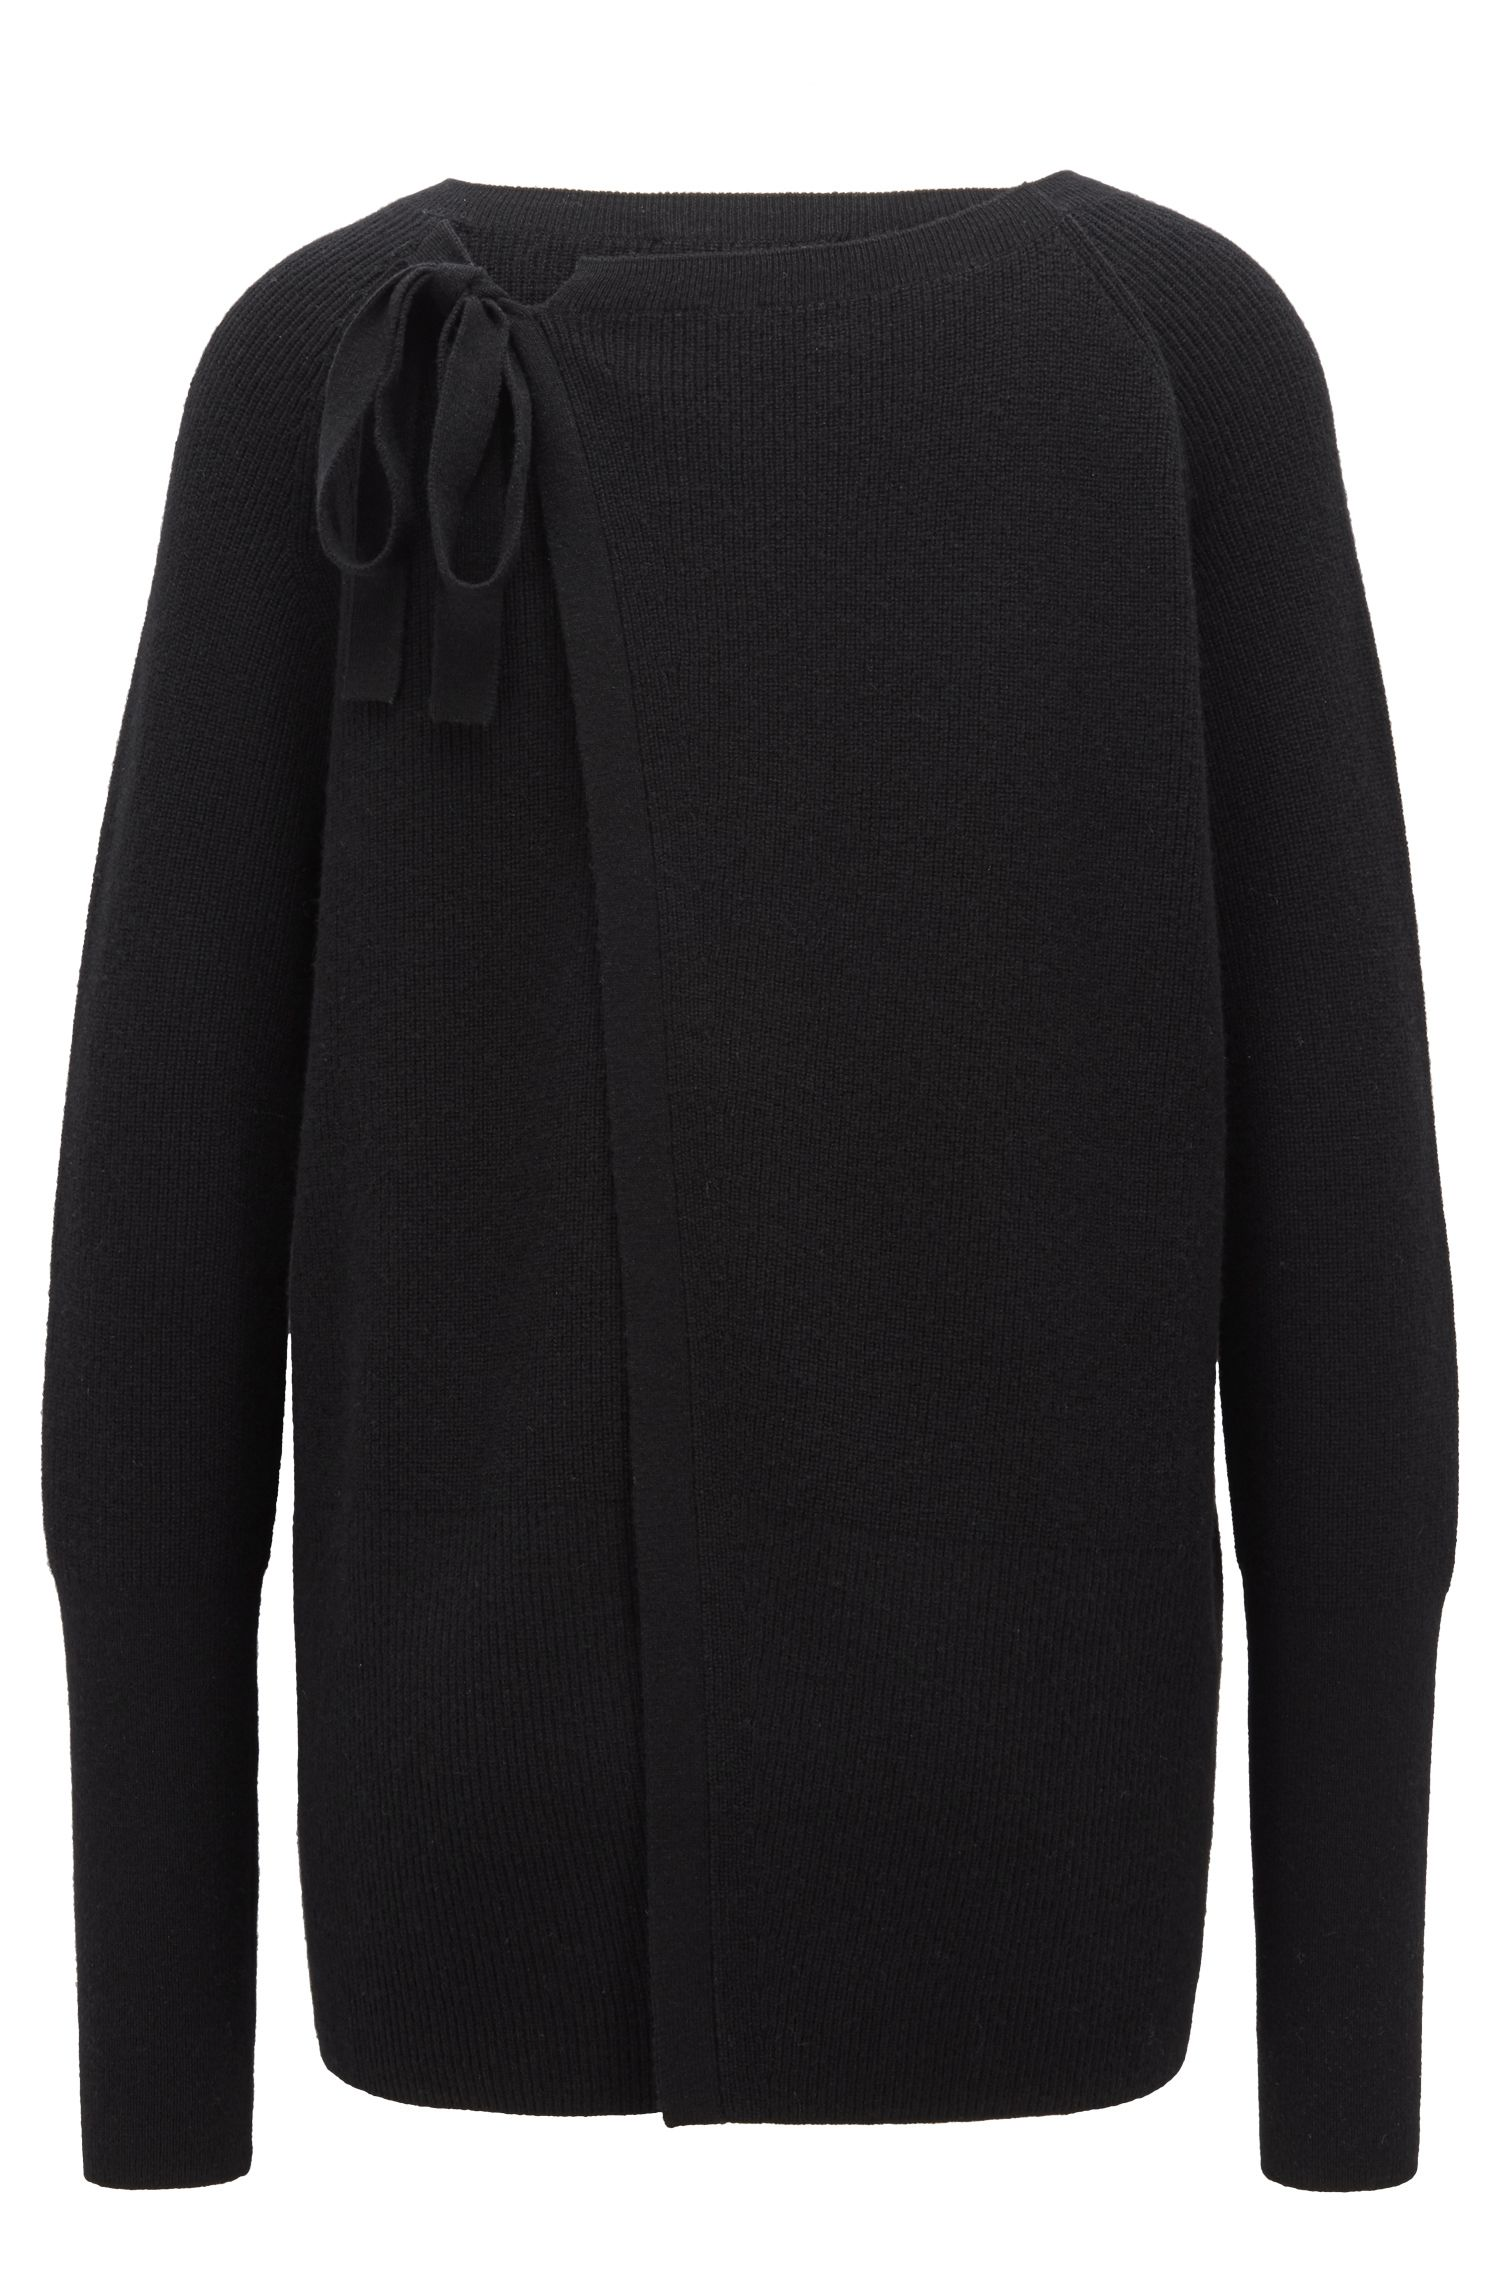 Relaxed-fit sweater in mixed wool with rear tie, Black